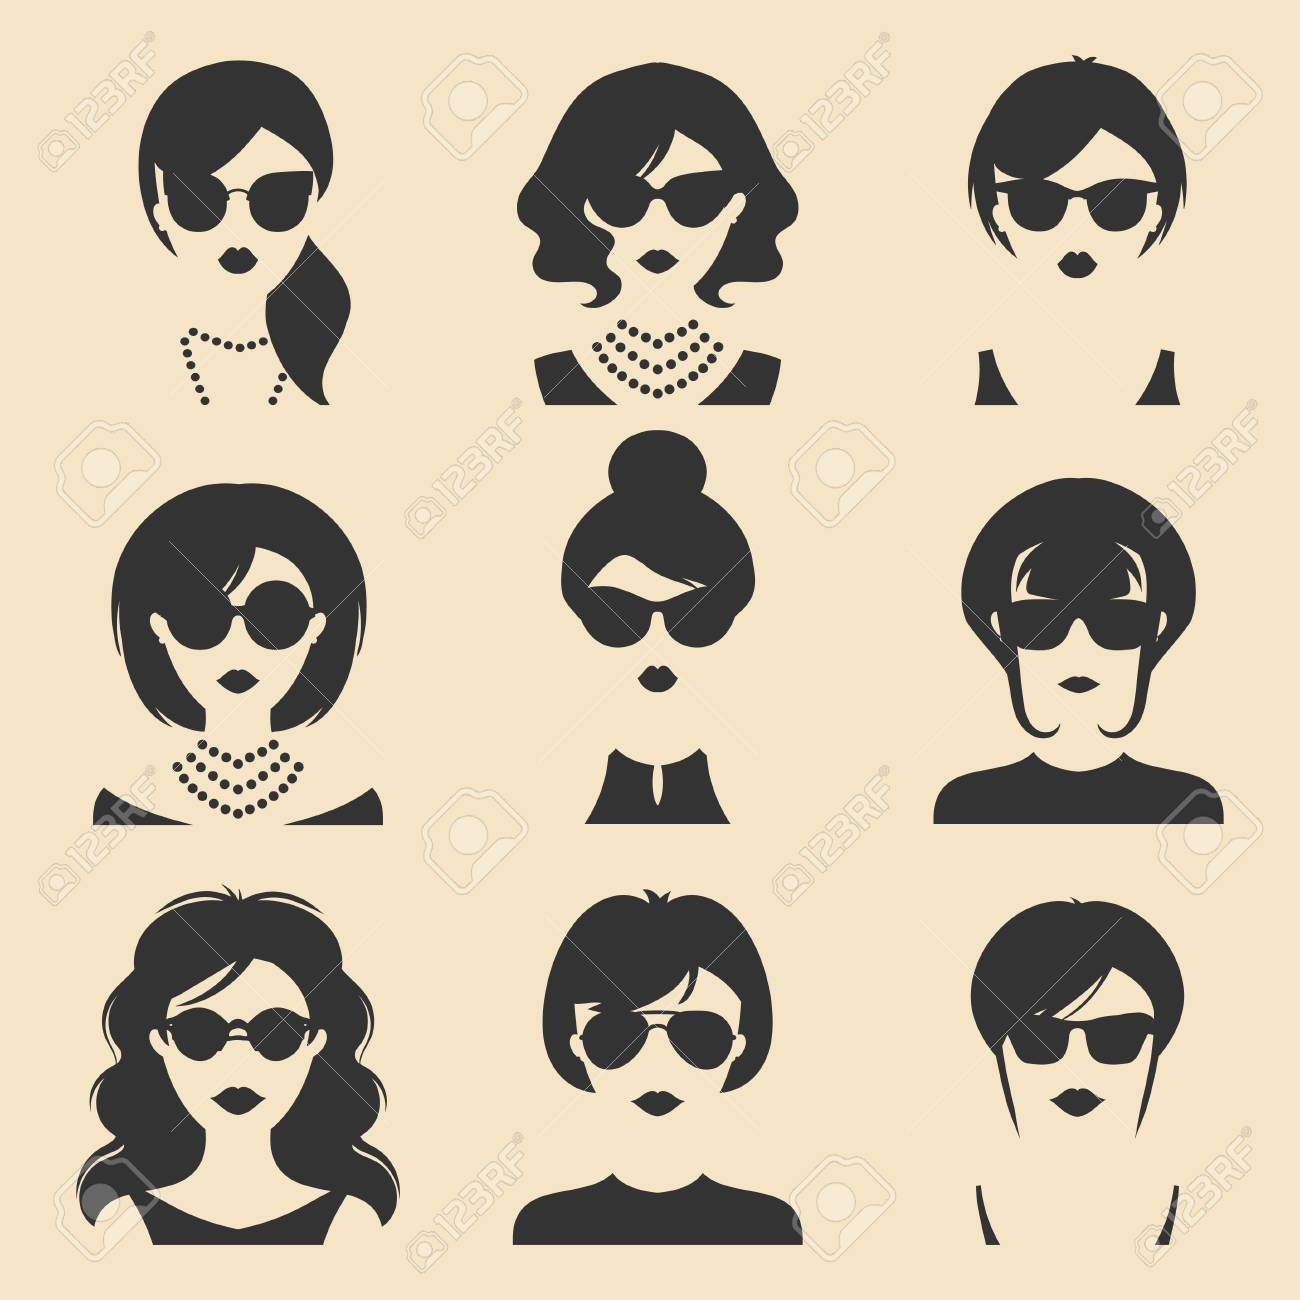 Big Vector Set Of Different Women App Icons In Sunglasses In